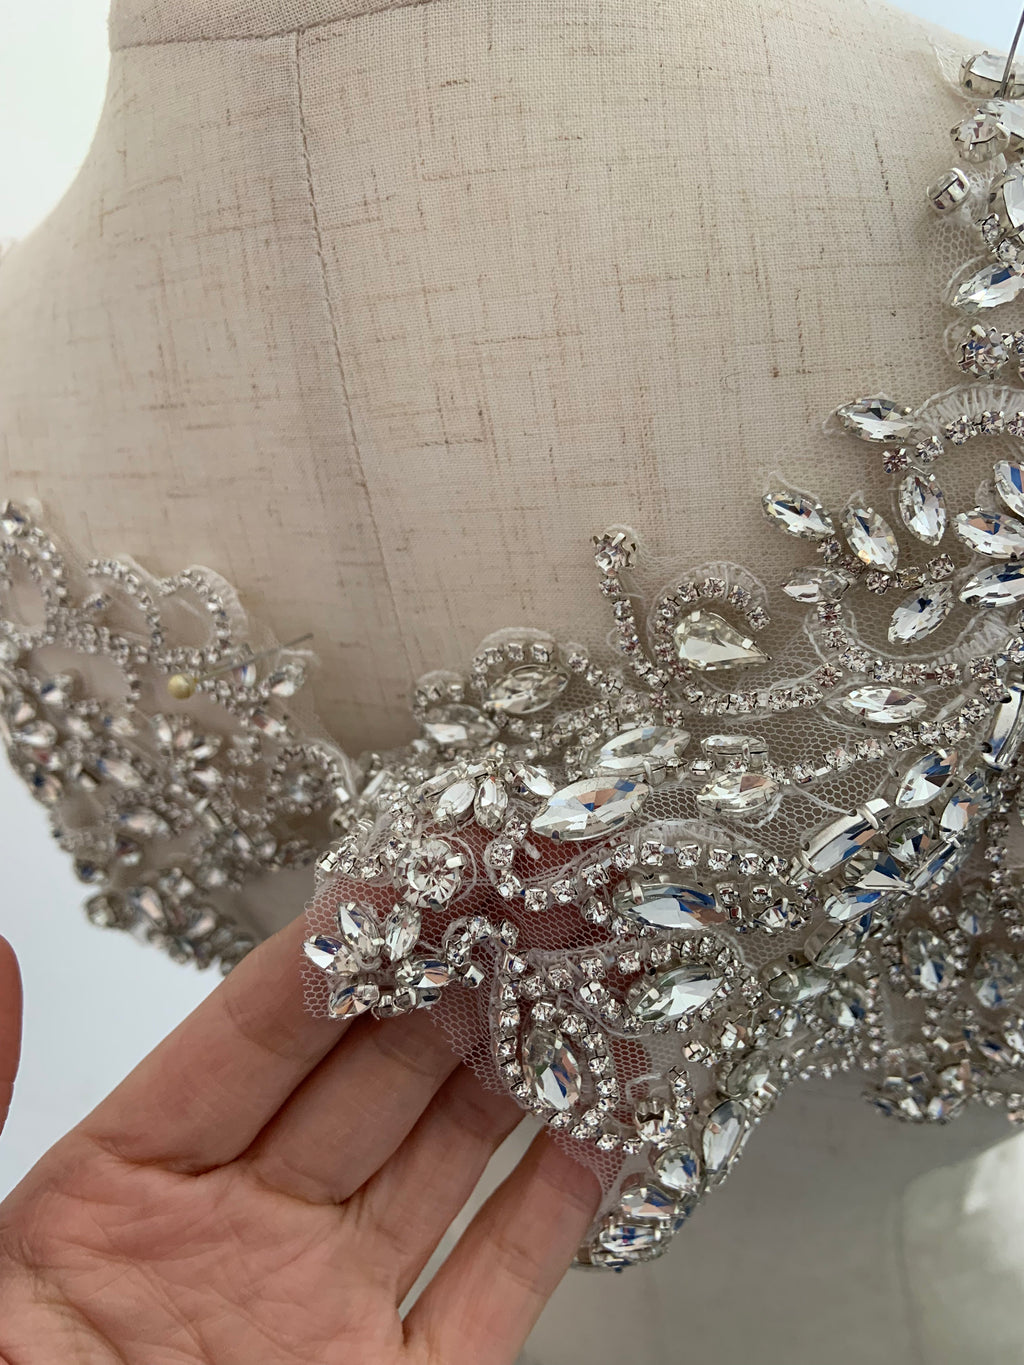 Rhinestone bead applique with retro motif, crystal bodice patch - lace era